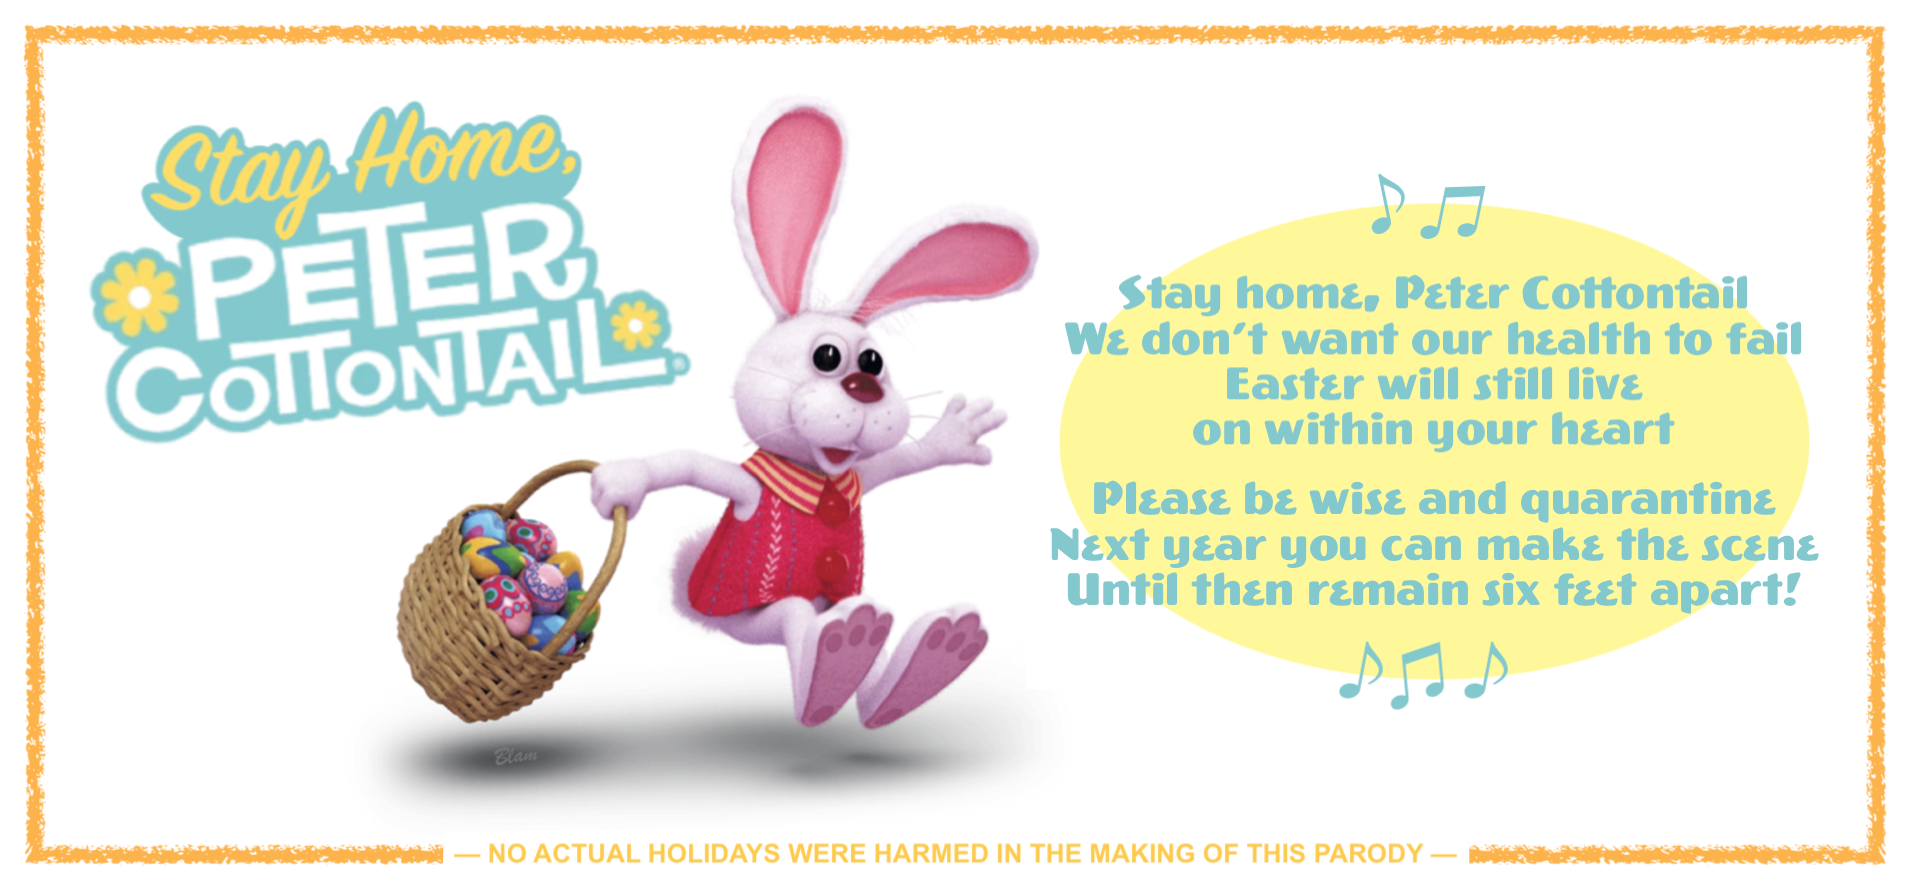 Stay home, Peter Cottontail / We don't want our health to fail / Easter will still live on within your heart / Please be wise and quarantine / Next year you can make the scene / Until then please stay six feet apart!